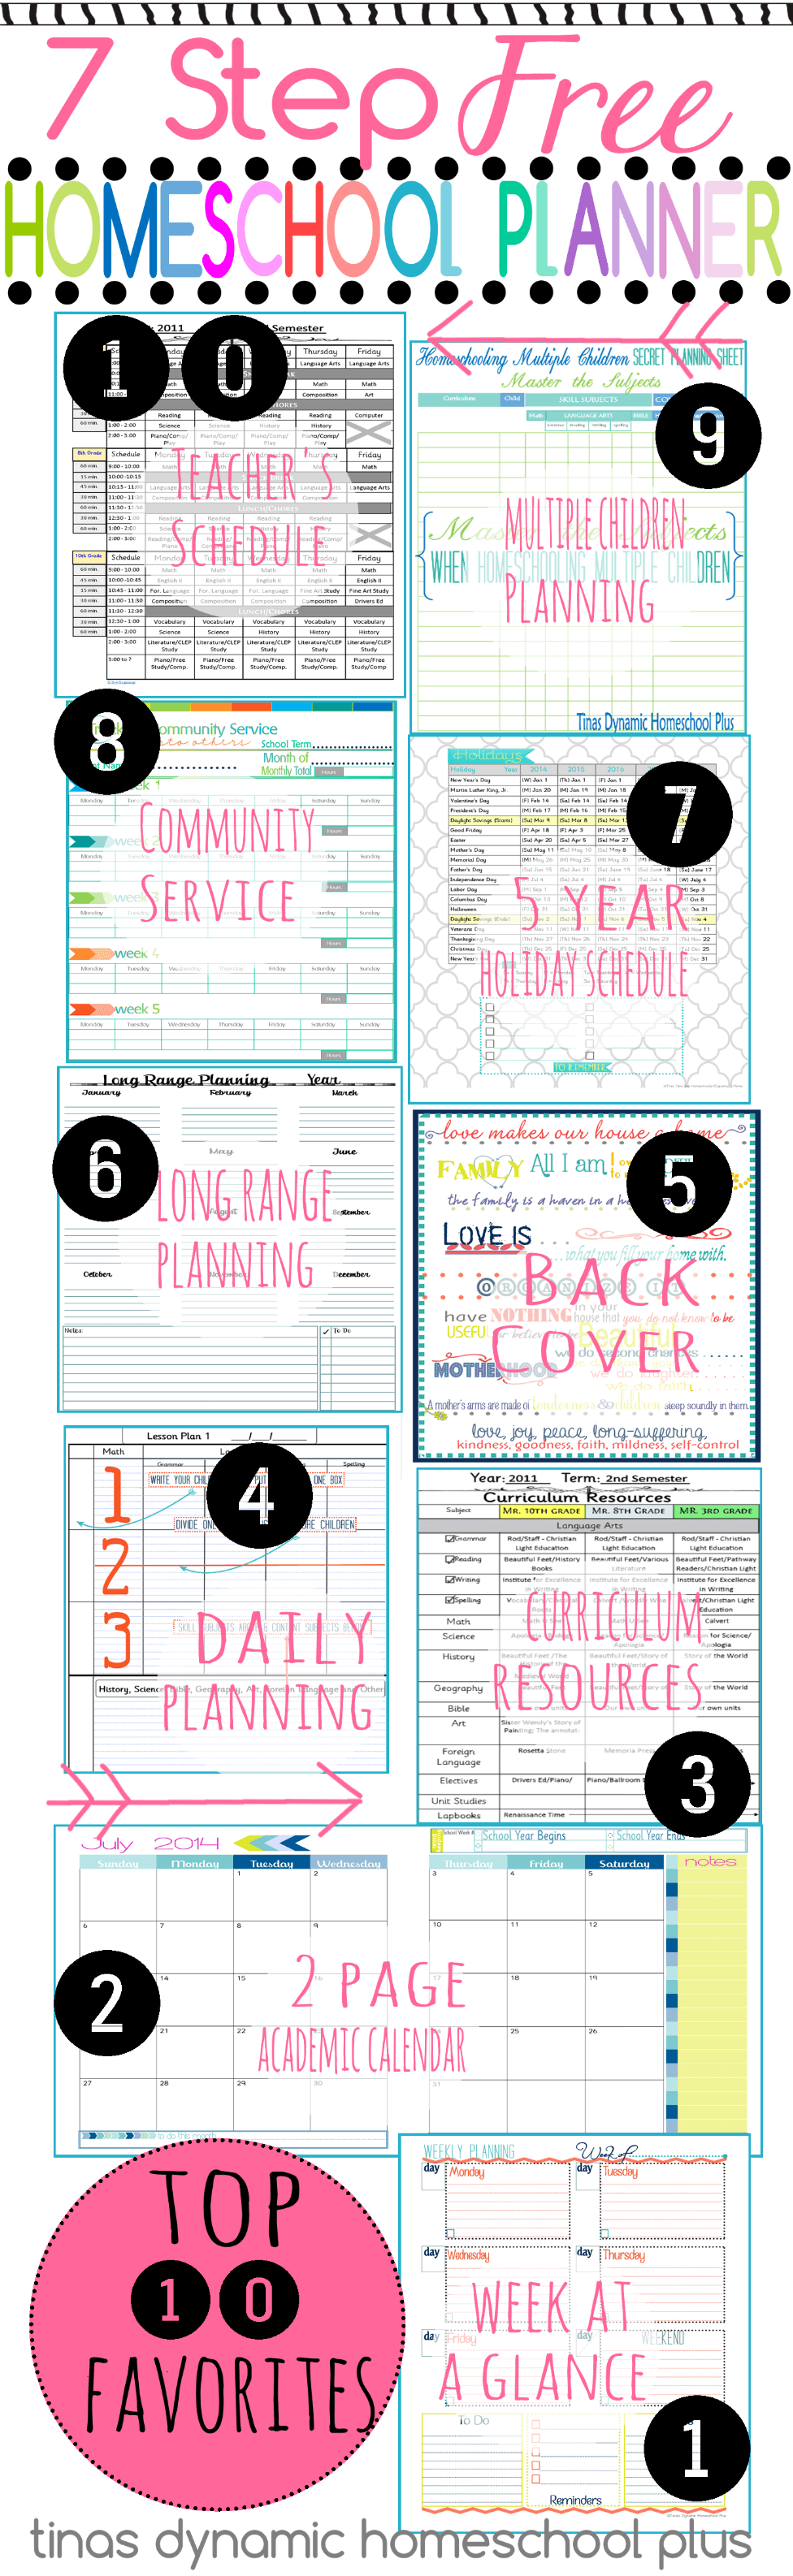 7 Step Homeschool Planner - Top 10 Reader Favorites